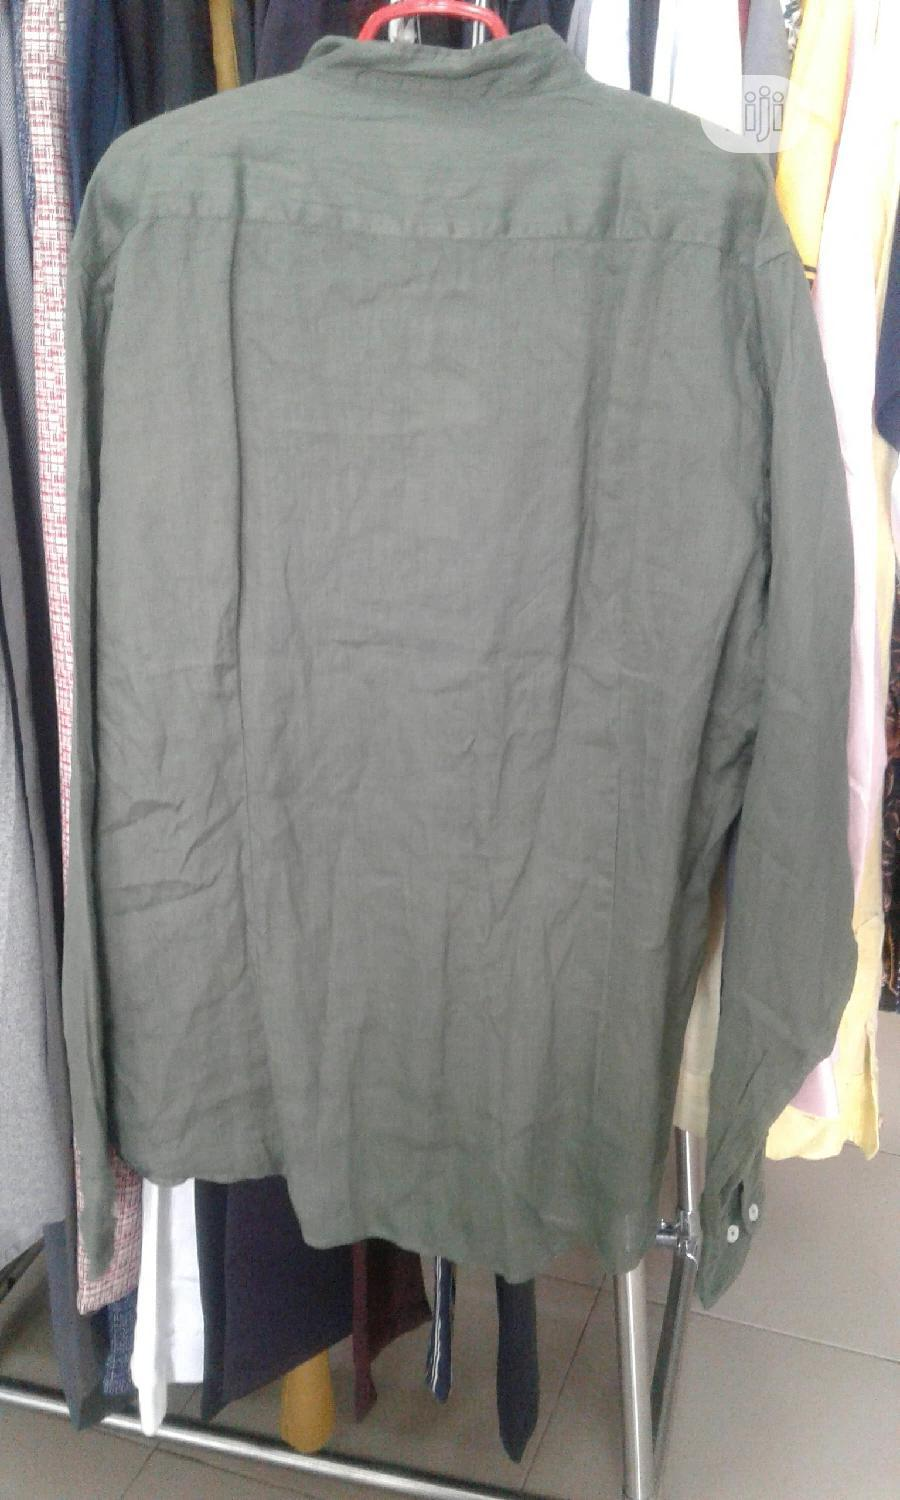 Rivsd Jssue | Clothing for sale in Amuwo-Odofin, Lagos State, Nigeria